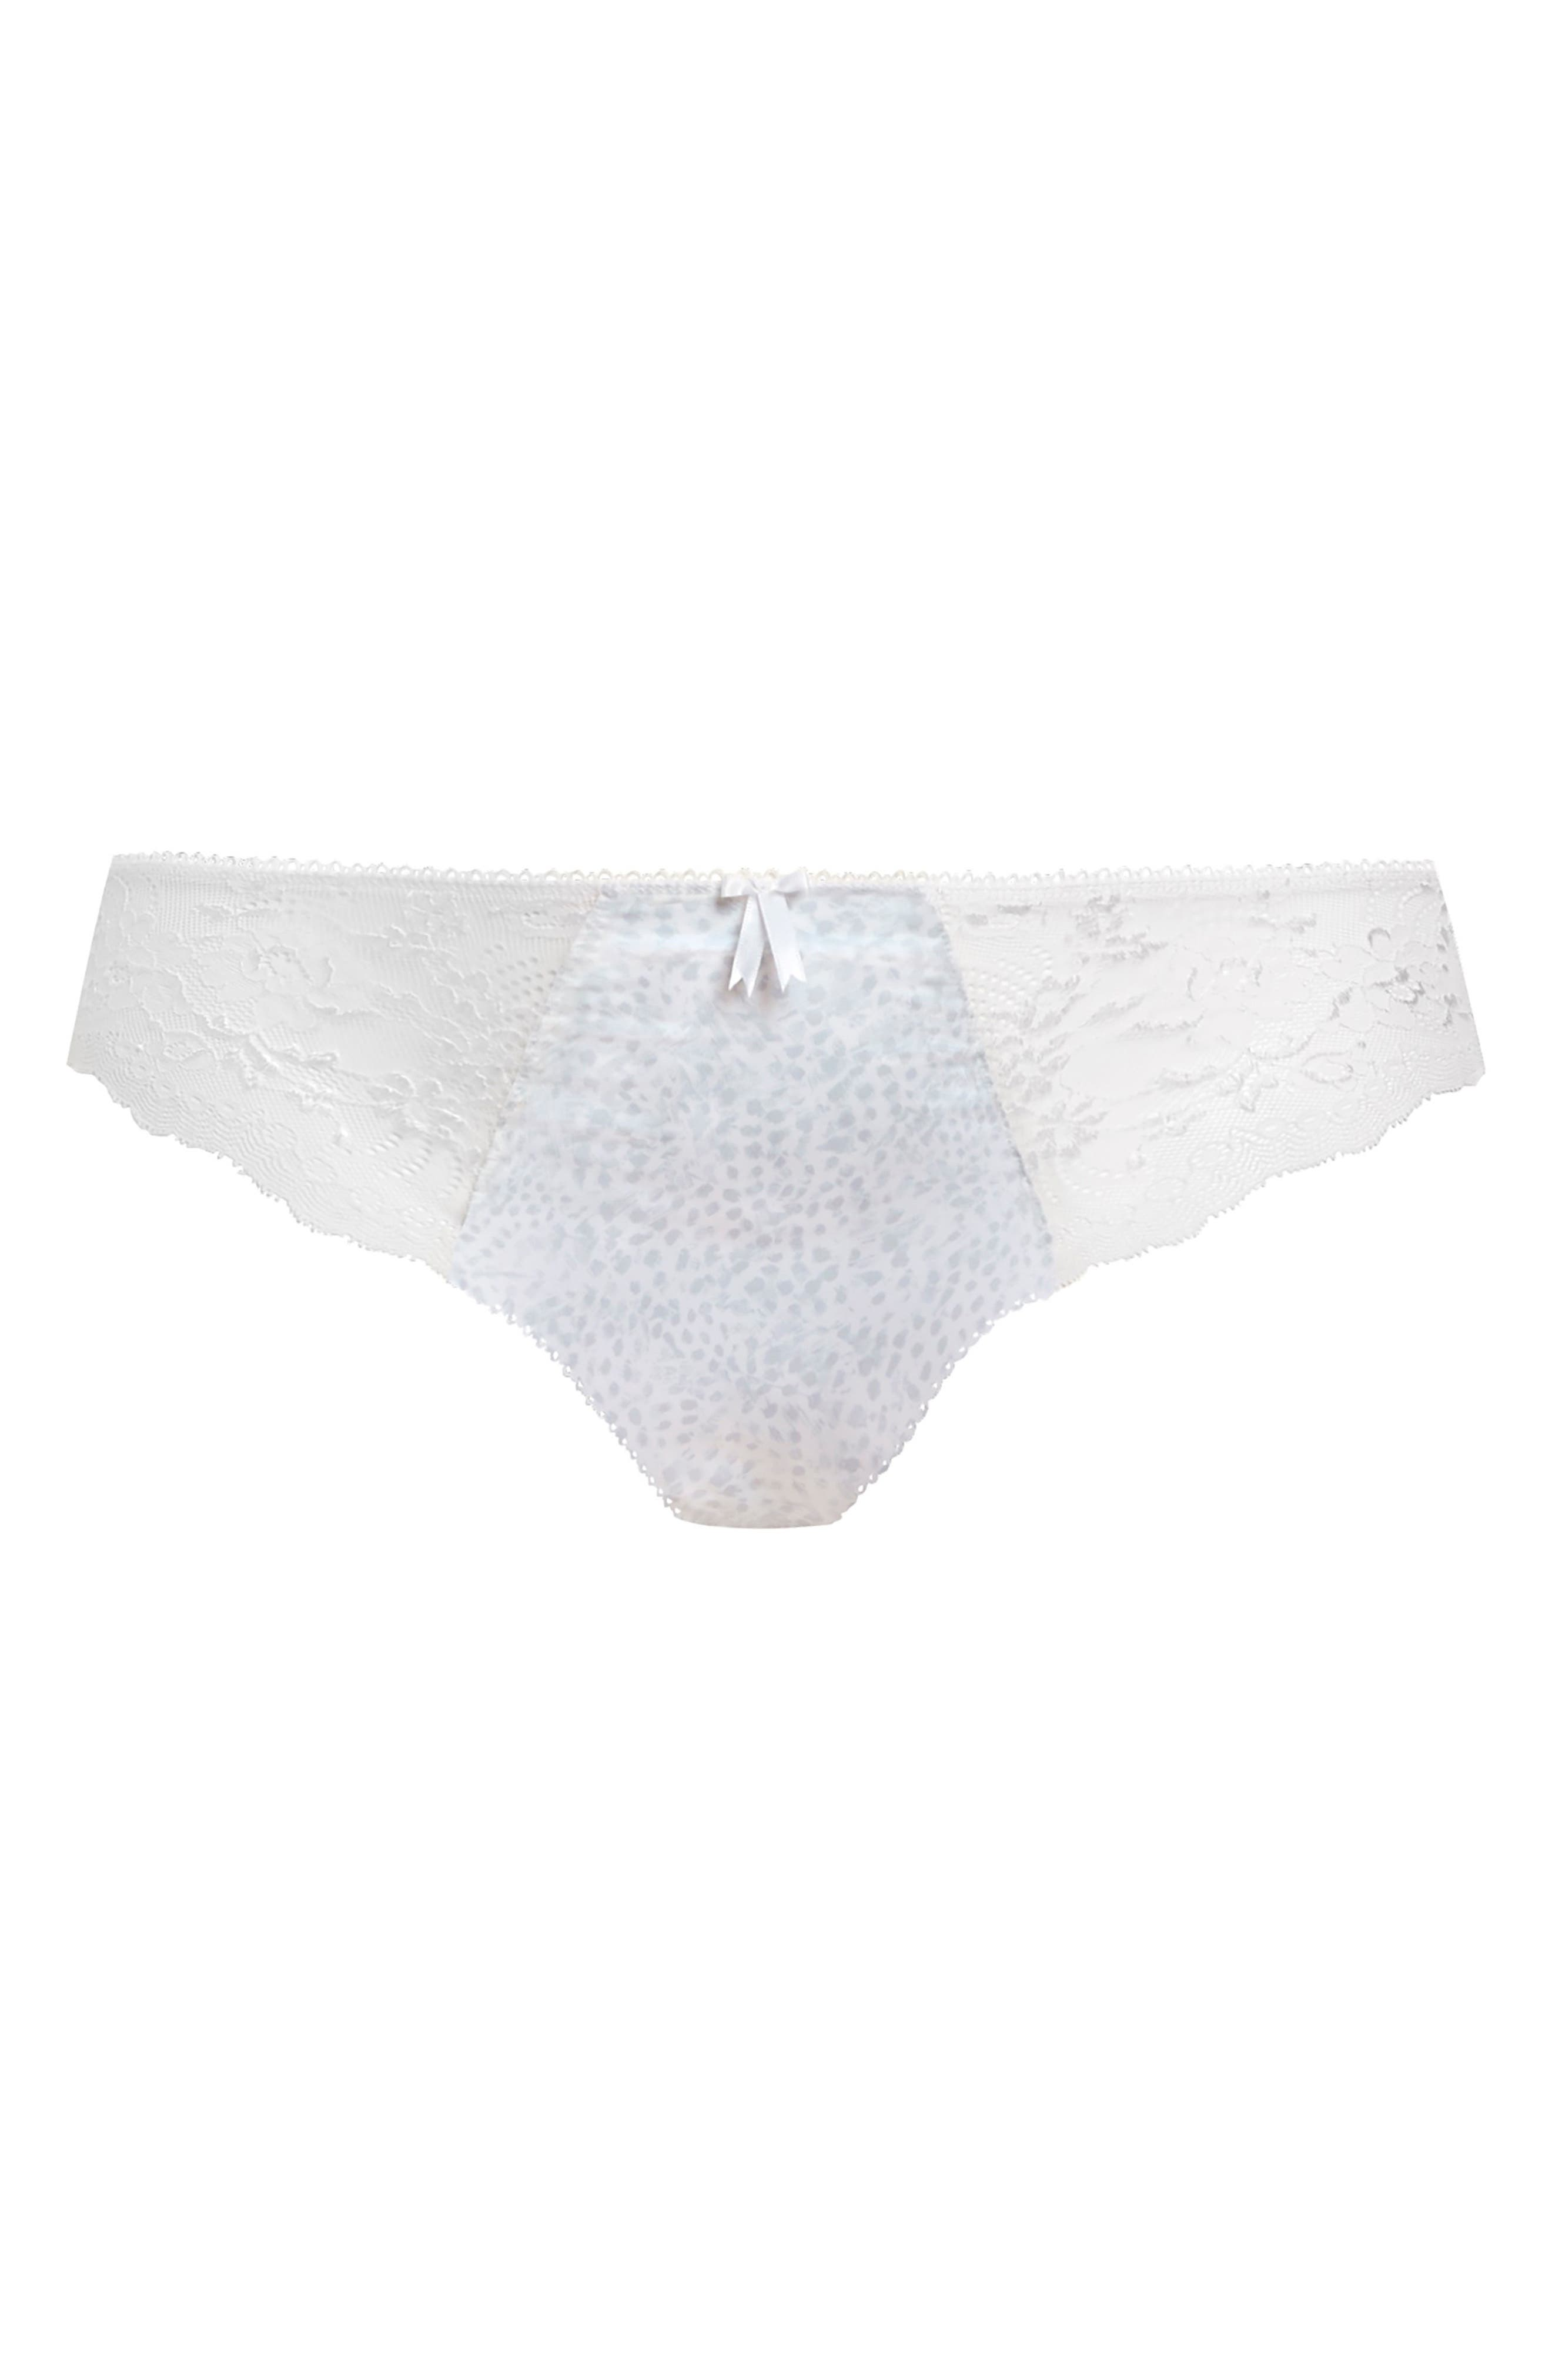 Floral lace accents the sheer sides of stretchy, mid-rise briefs patterned in animal spots and topped with a center front bow. Style Name: Elomi Morgan Briefs (Plus Size). Style Number: 5142370. Available in stores.